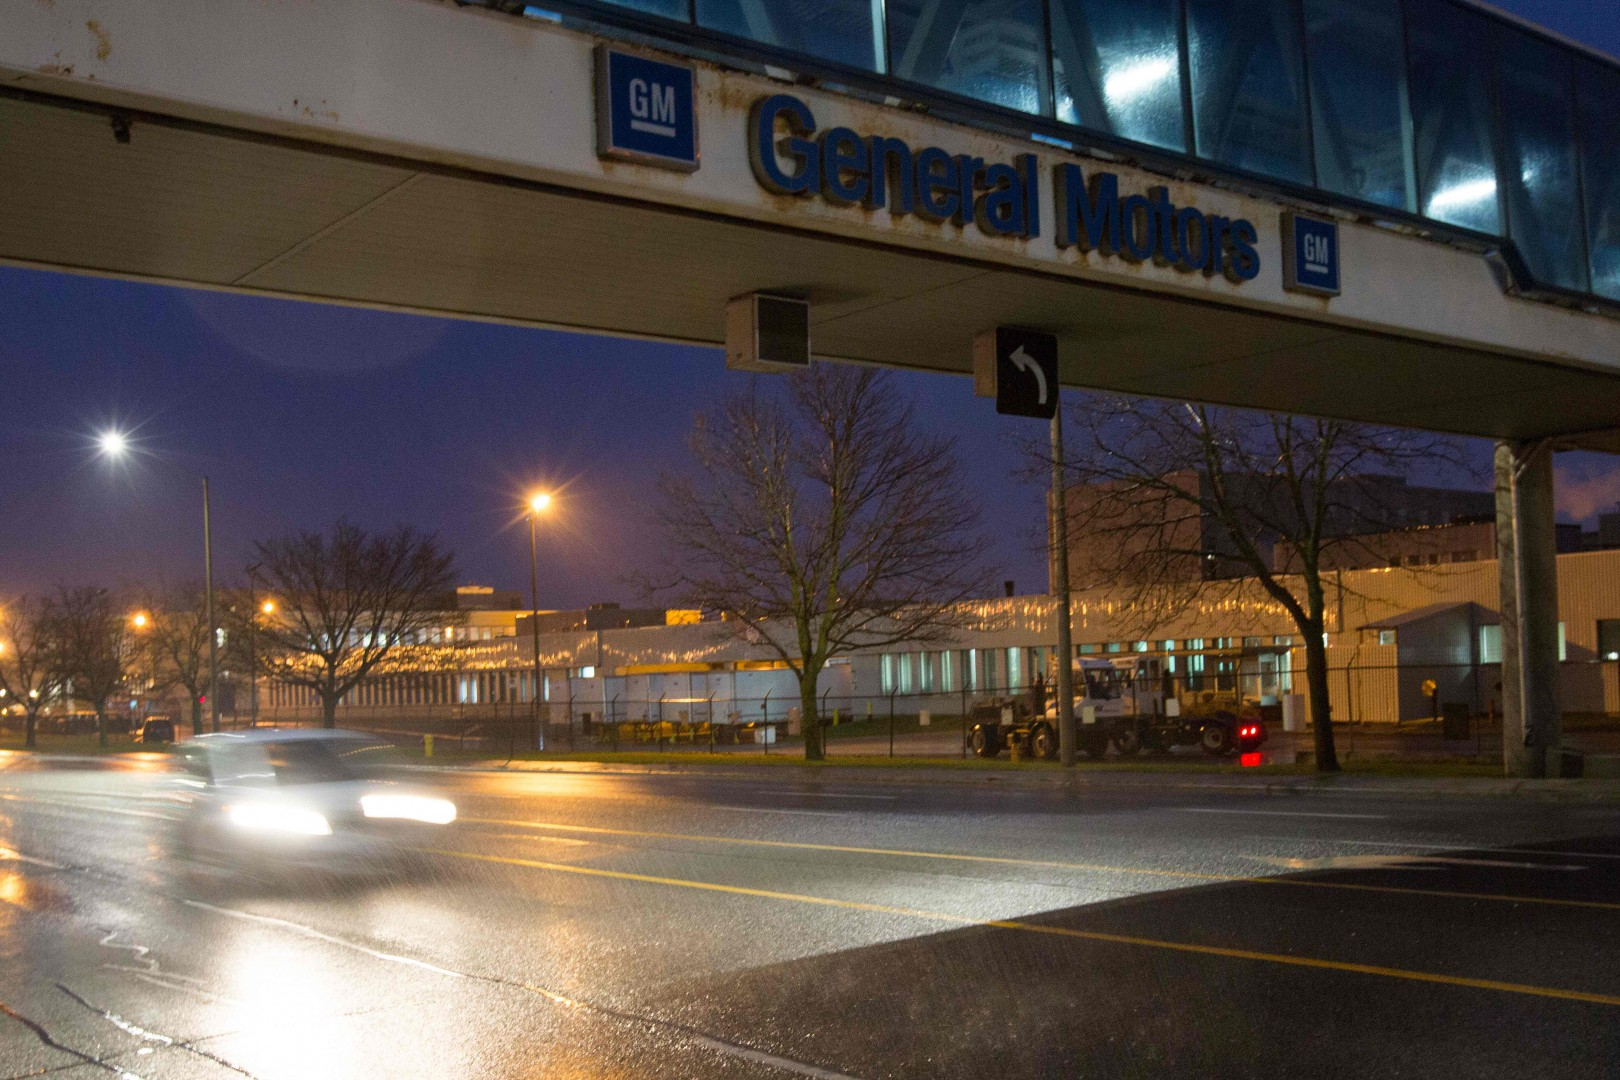 The General Motors Assembly office is viewed in Oshawa, Ontario, on November 26, 2018. - General Motors is to announce on Monday the closure of a factory in Canada, putting almost 3,000 jobs at risk, Canadian news media reported. The decision is part of the US automaker's plans for a comprehensive global restructuring, channel CTV reported Sunday, citing several anonymous sources. Other media, including Radio-Canada/CBC, had similar reports. (Photo by Lars Hagberg / AFP)